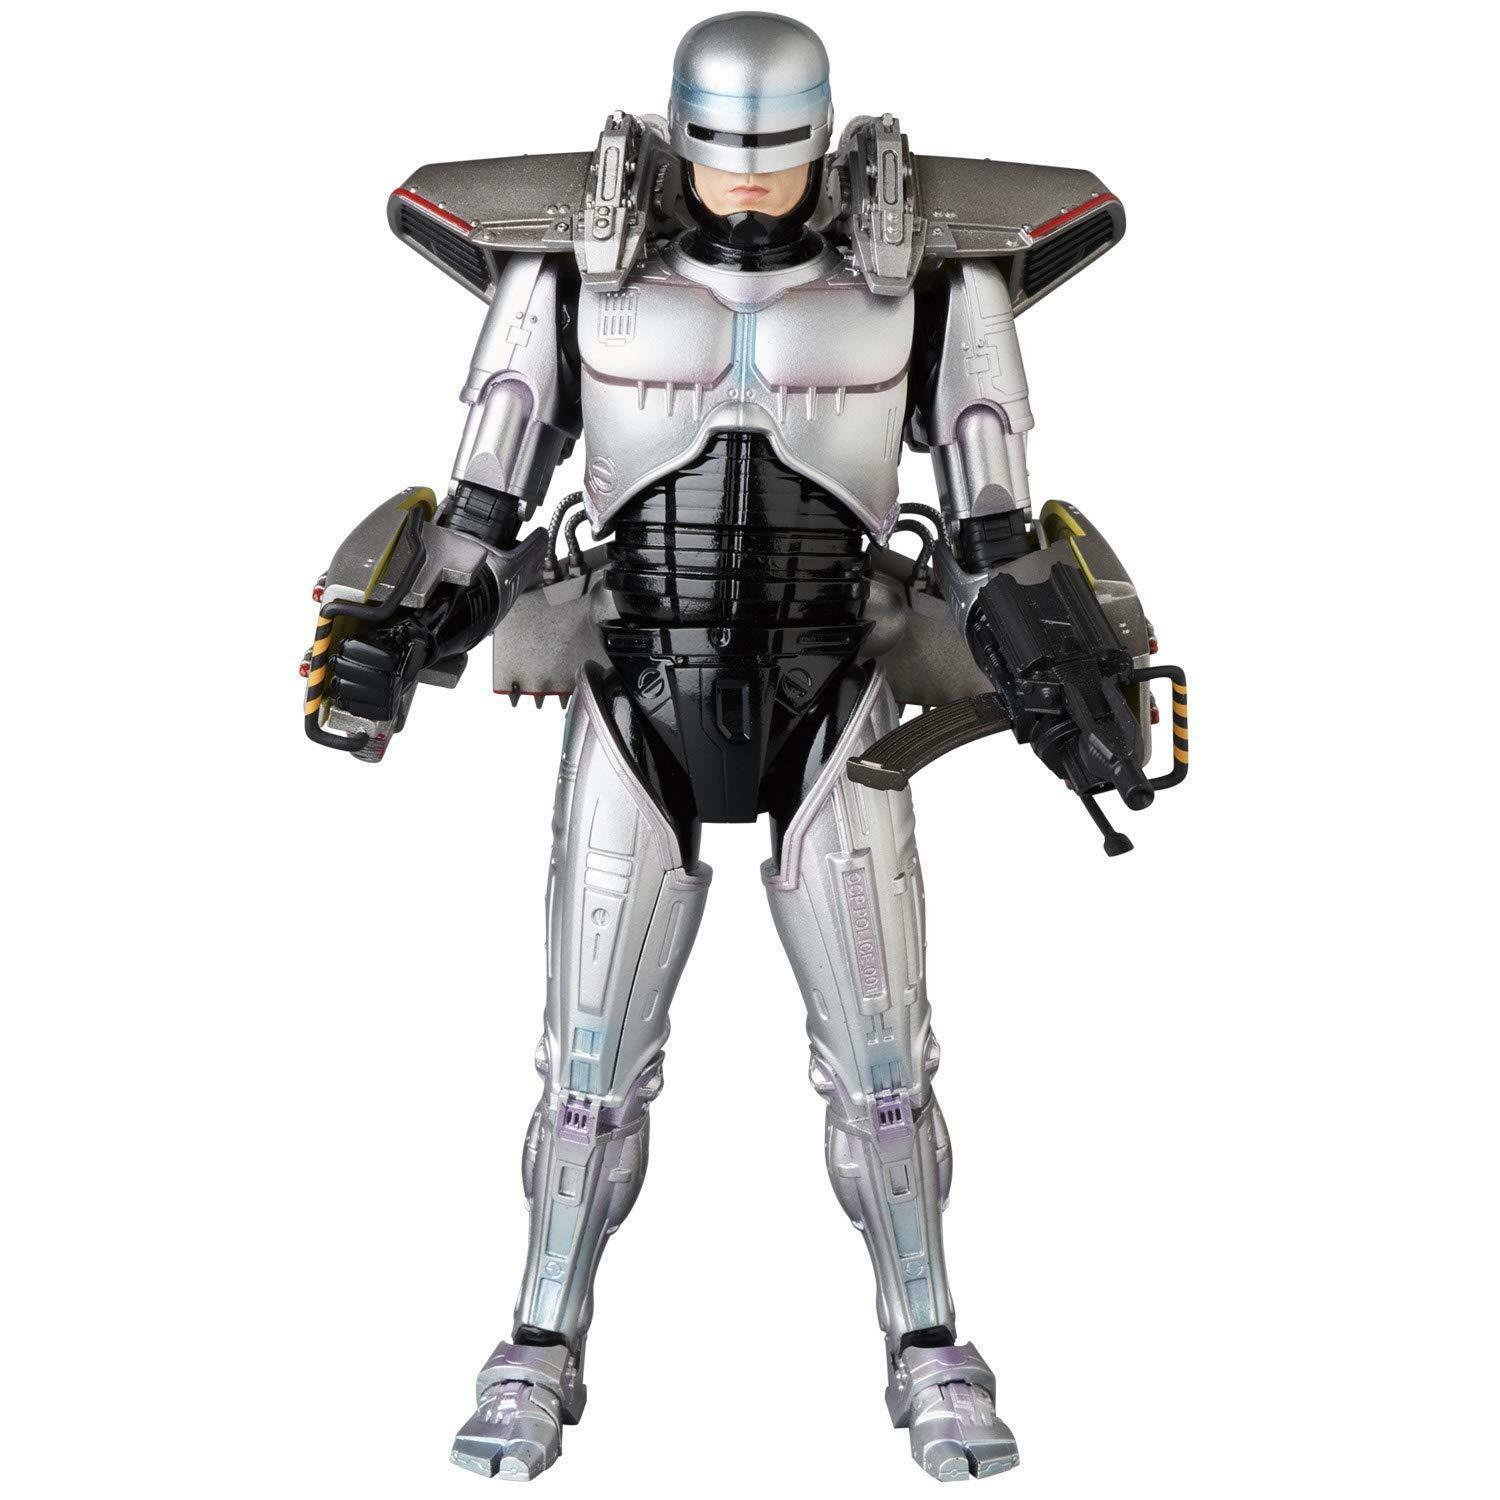 Medicom Toy MAFEX RoboCop 3 Japan version